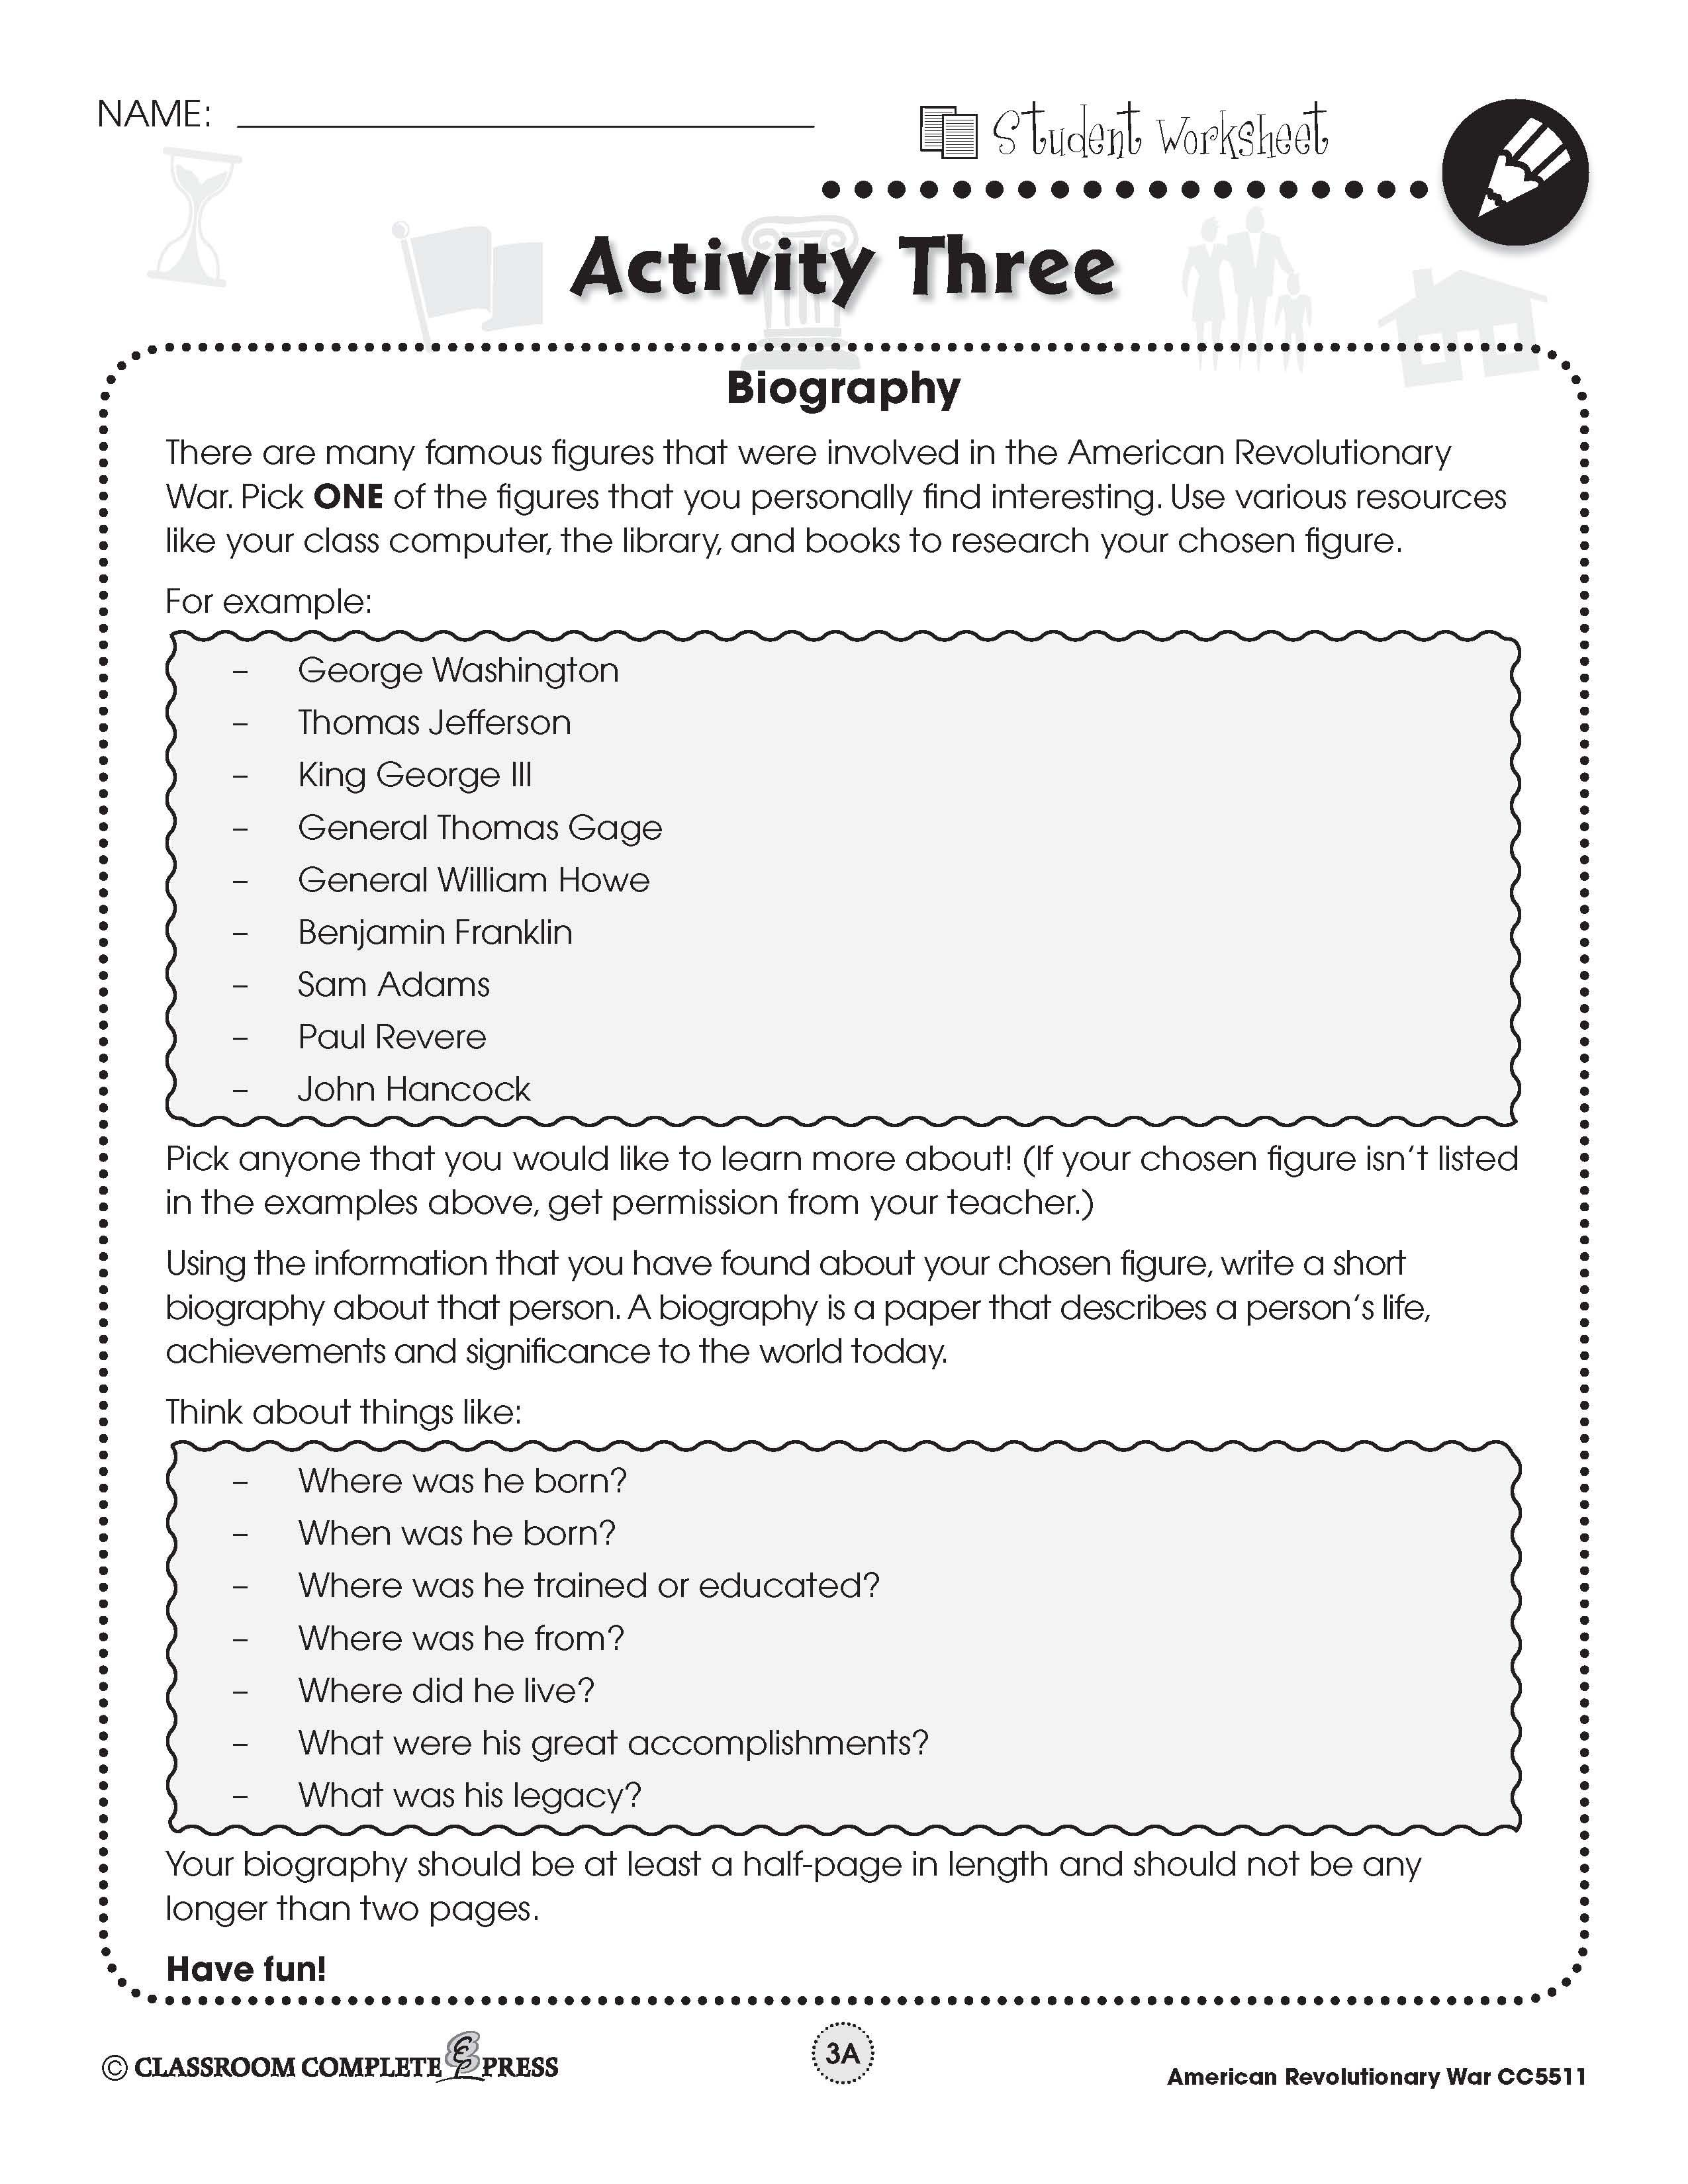 Write A Biography Of A Key Figure In The Revolutionary War In This Free Activity From Ccp Interactive A Di Writing A Biography Social Studies Military History